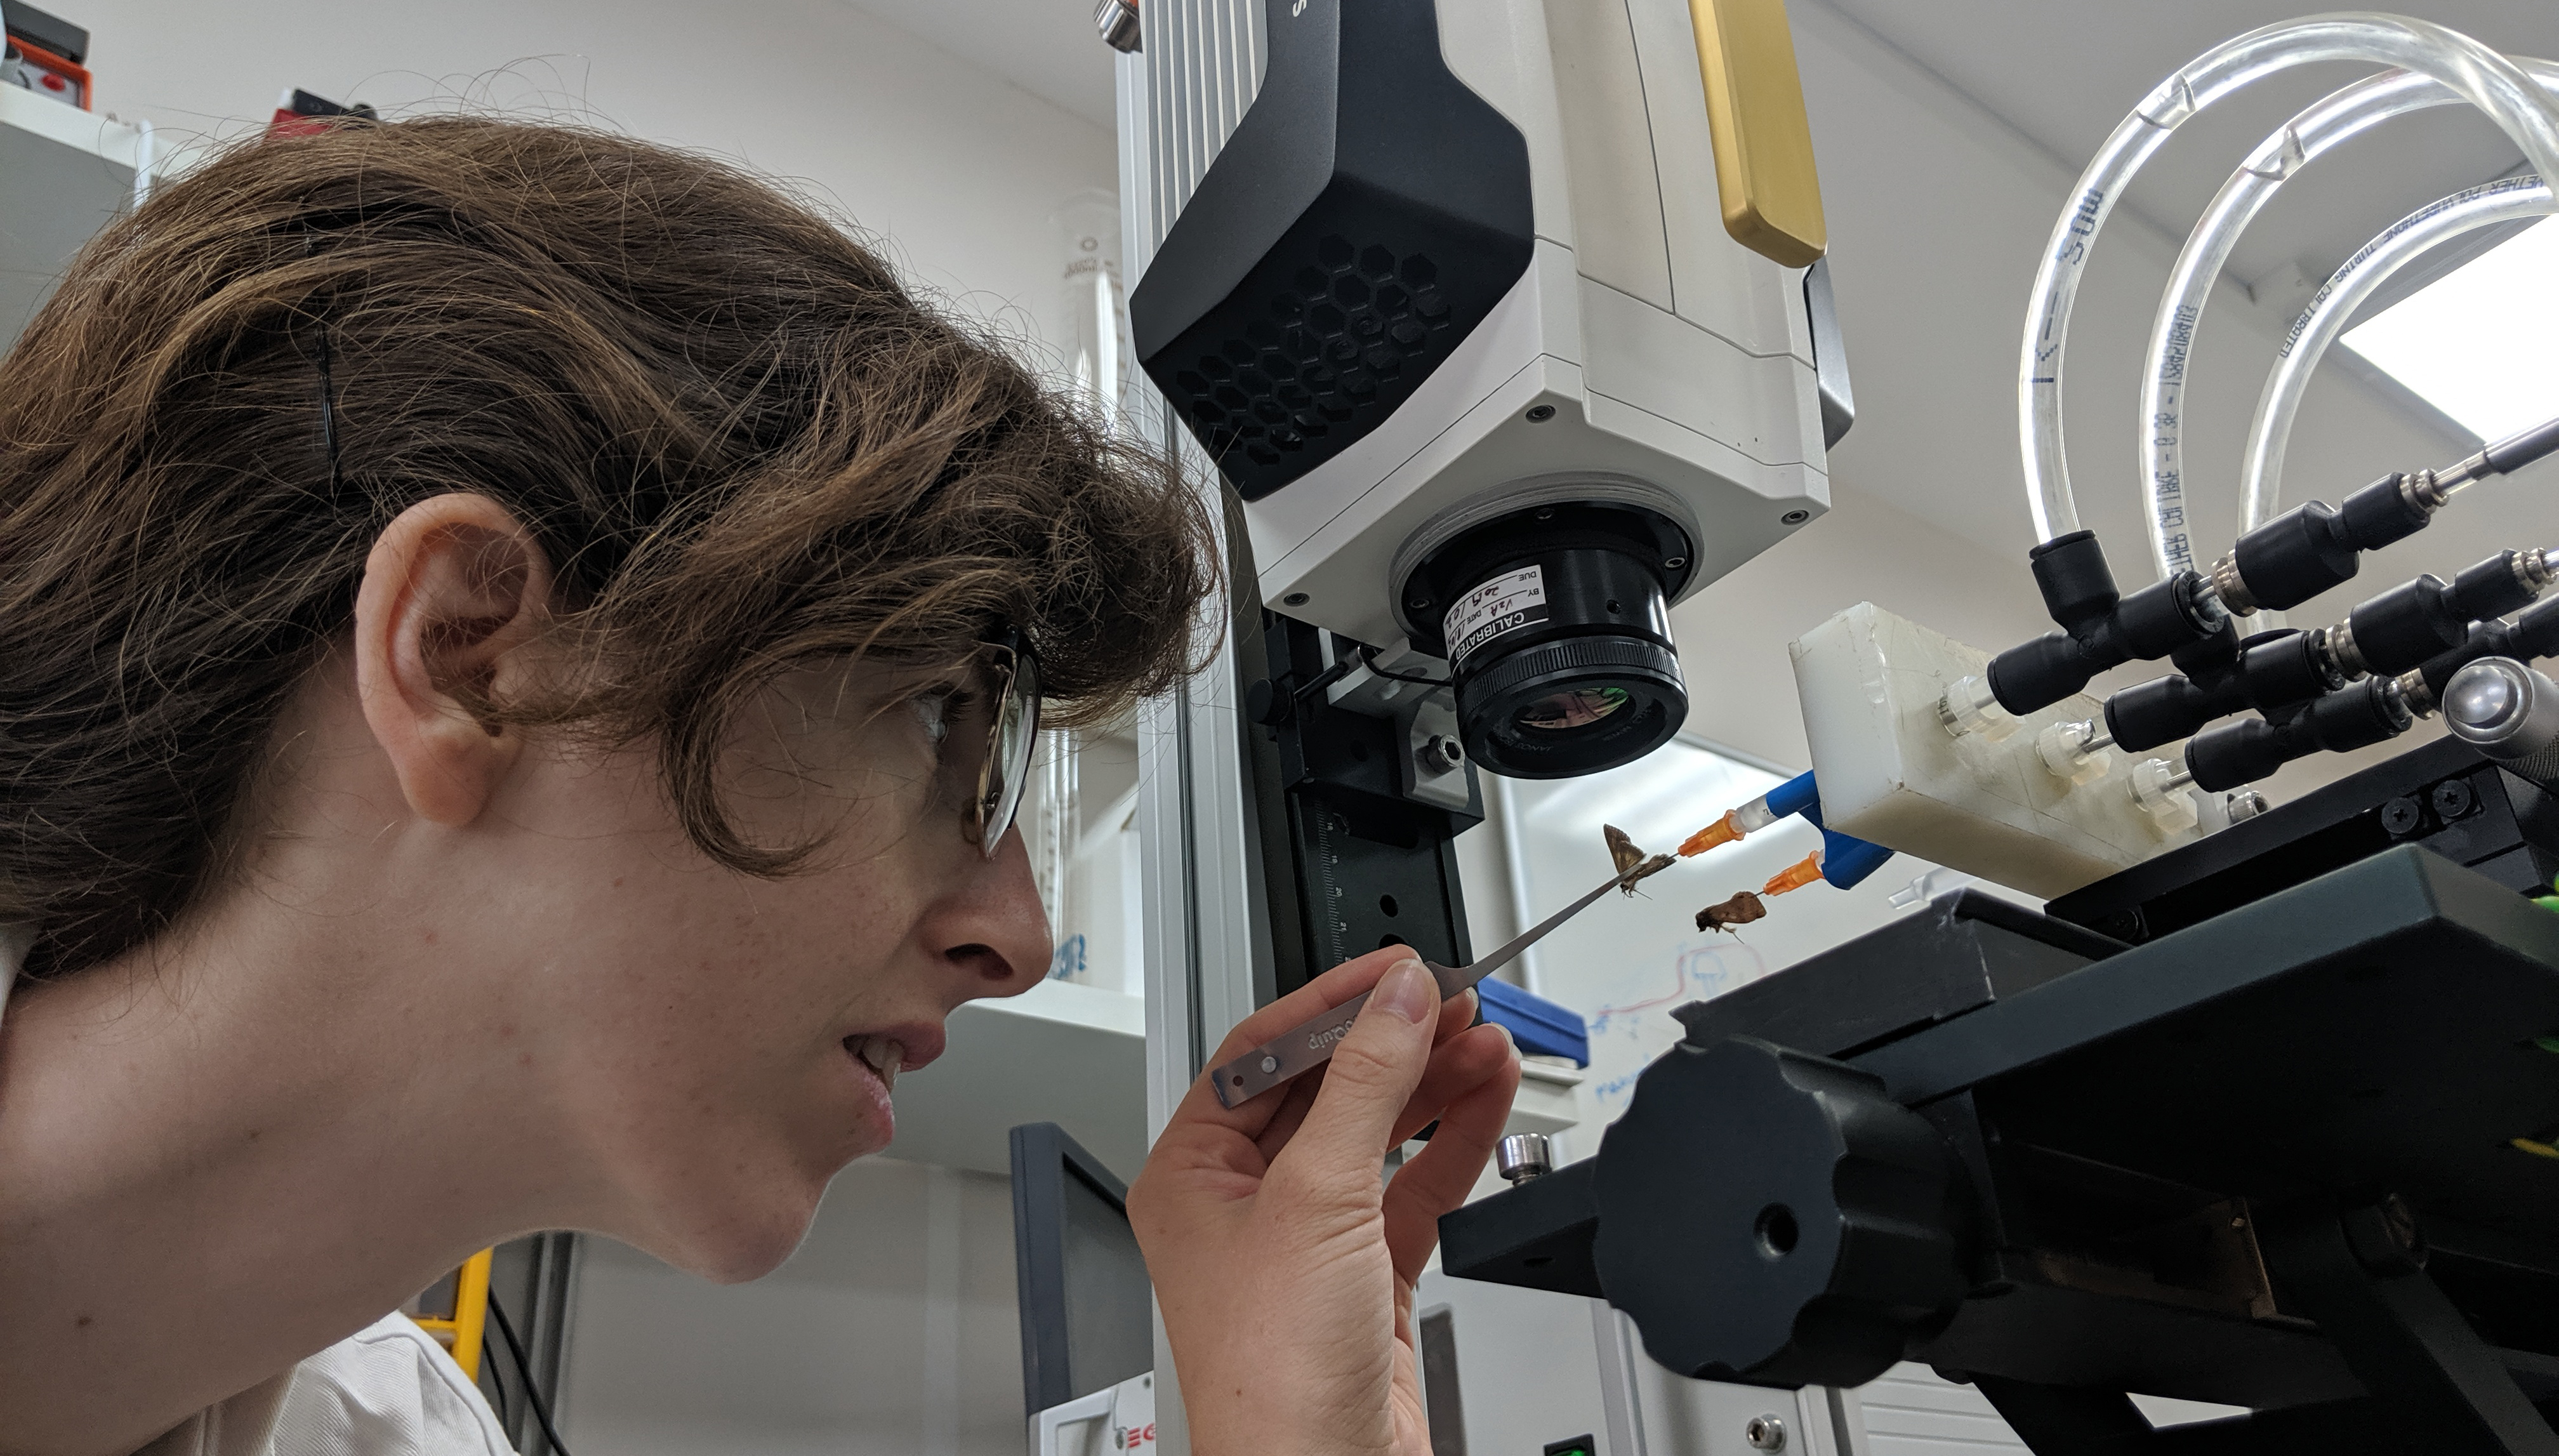 Researcher Rona Eckert of the School of Zoology, uses the unique equipment in the laboratory, as part of a study on heat conservation in the body of moths